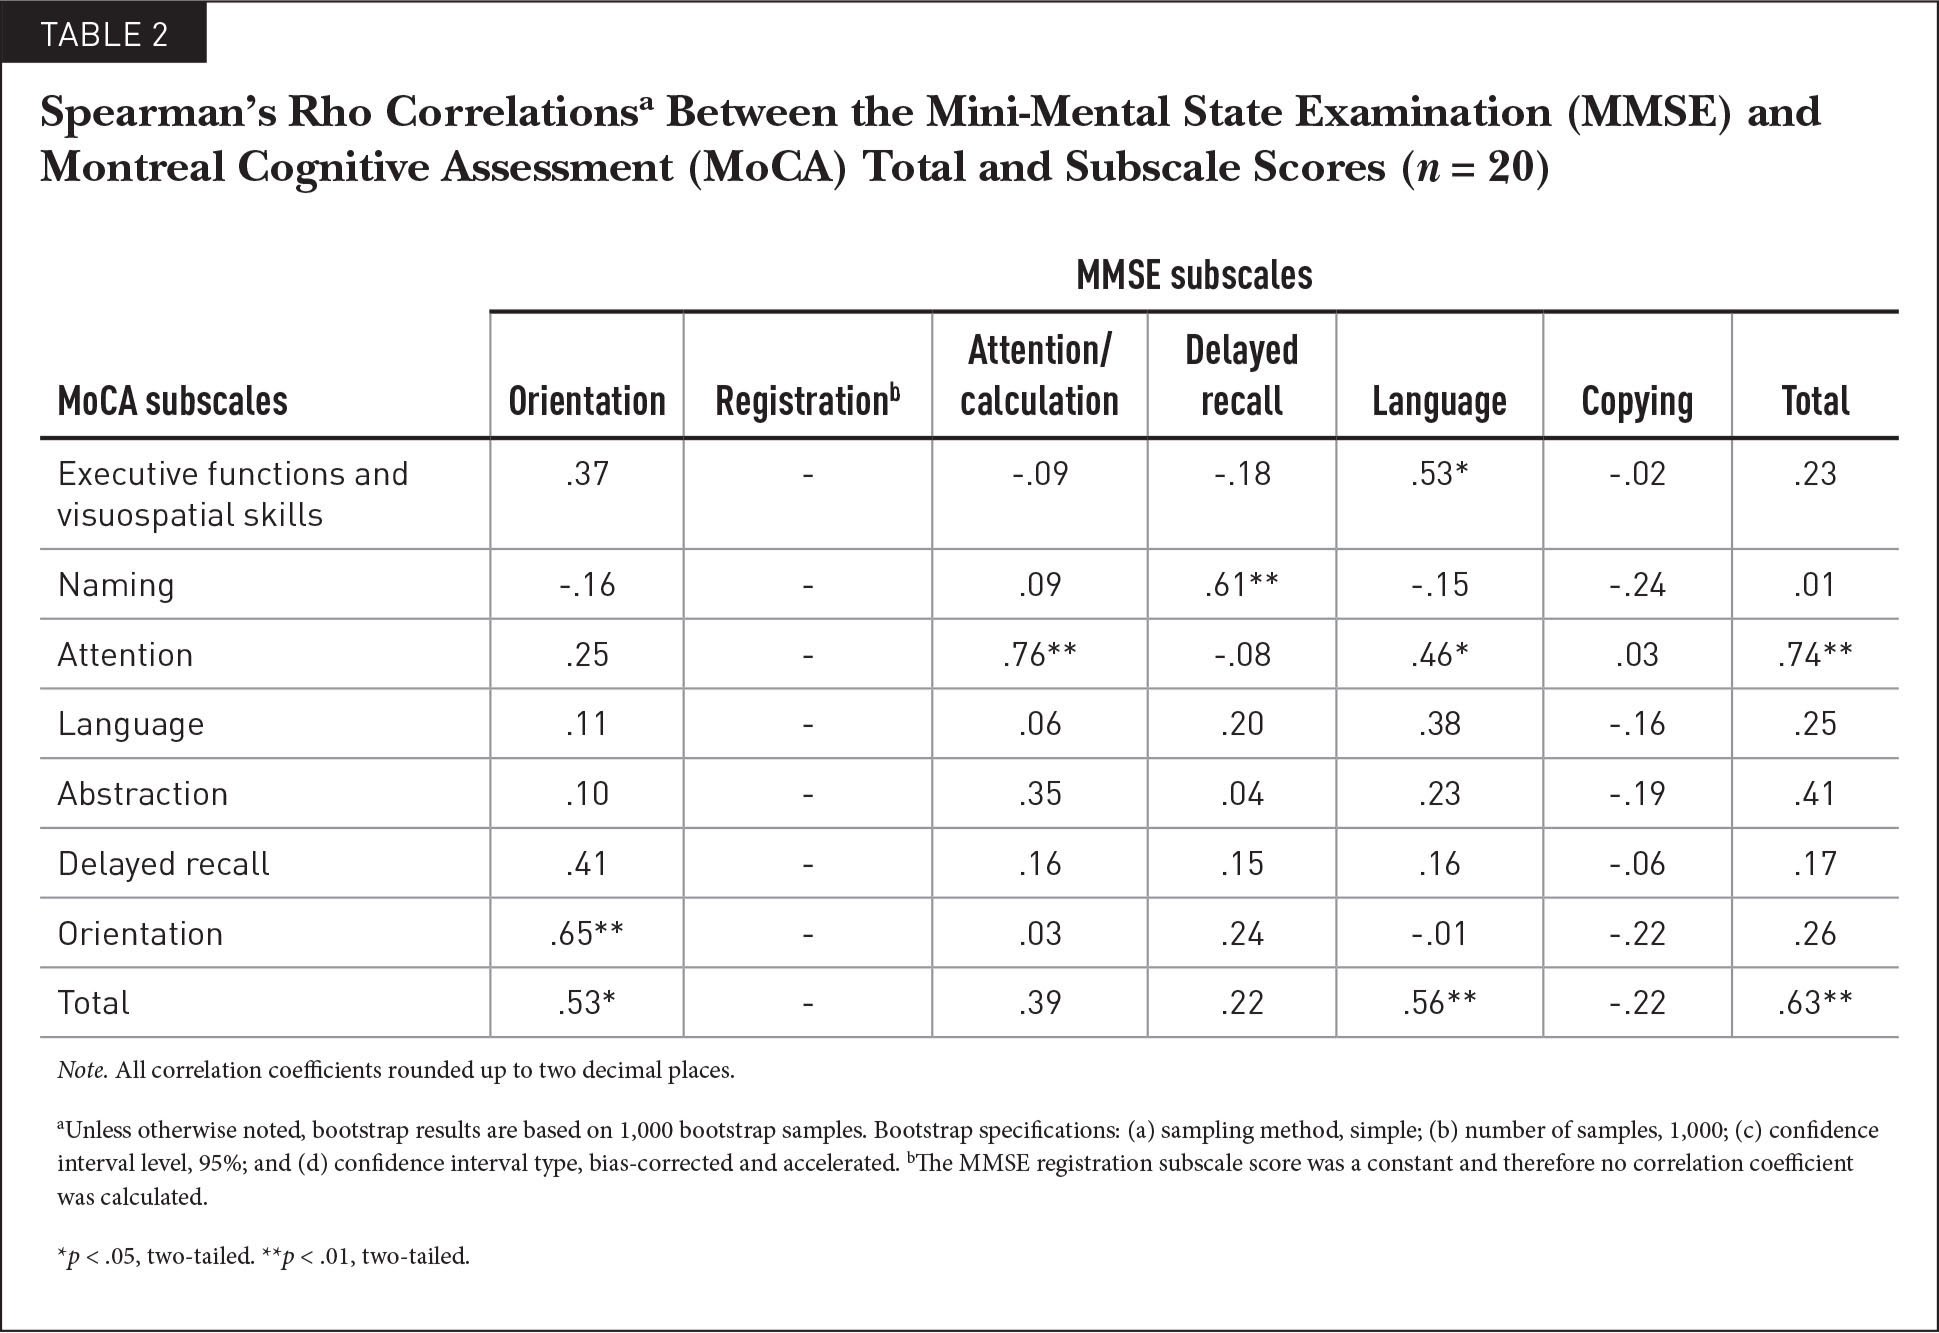 Spearman's Rho Correlationsa Between the Mini-Mental State Examination (MMSE) and Montreal Cognitive Assessment (MoCA) Total and Subscale Scores (n = 20)